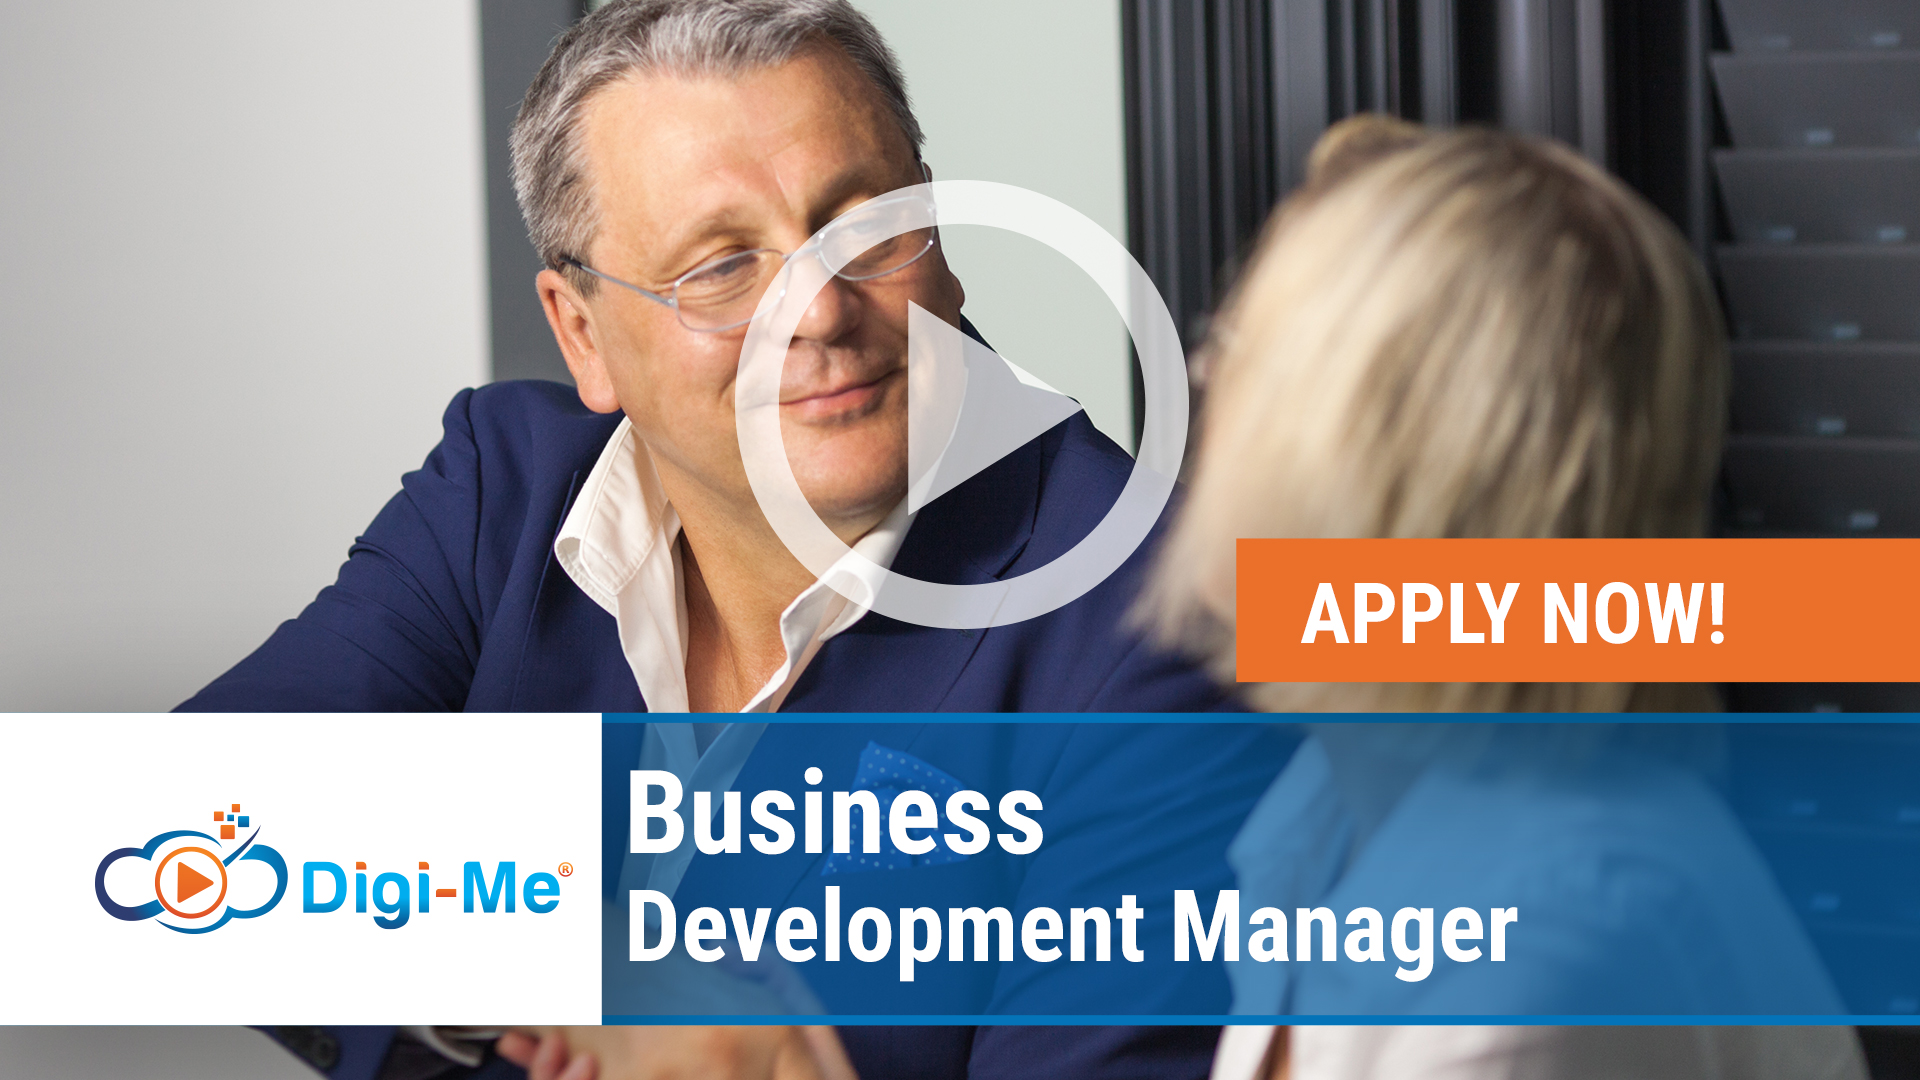 Watch our careers video for available job opening Business Development Manager in Nationwide, Nationwide